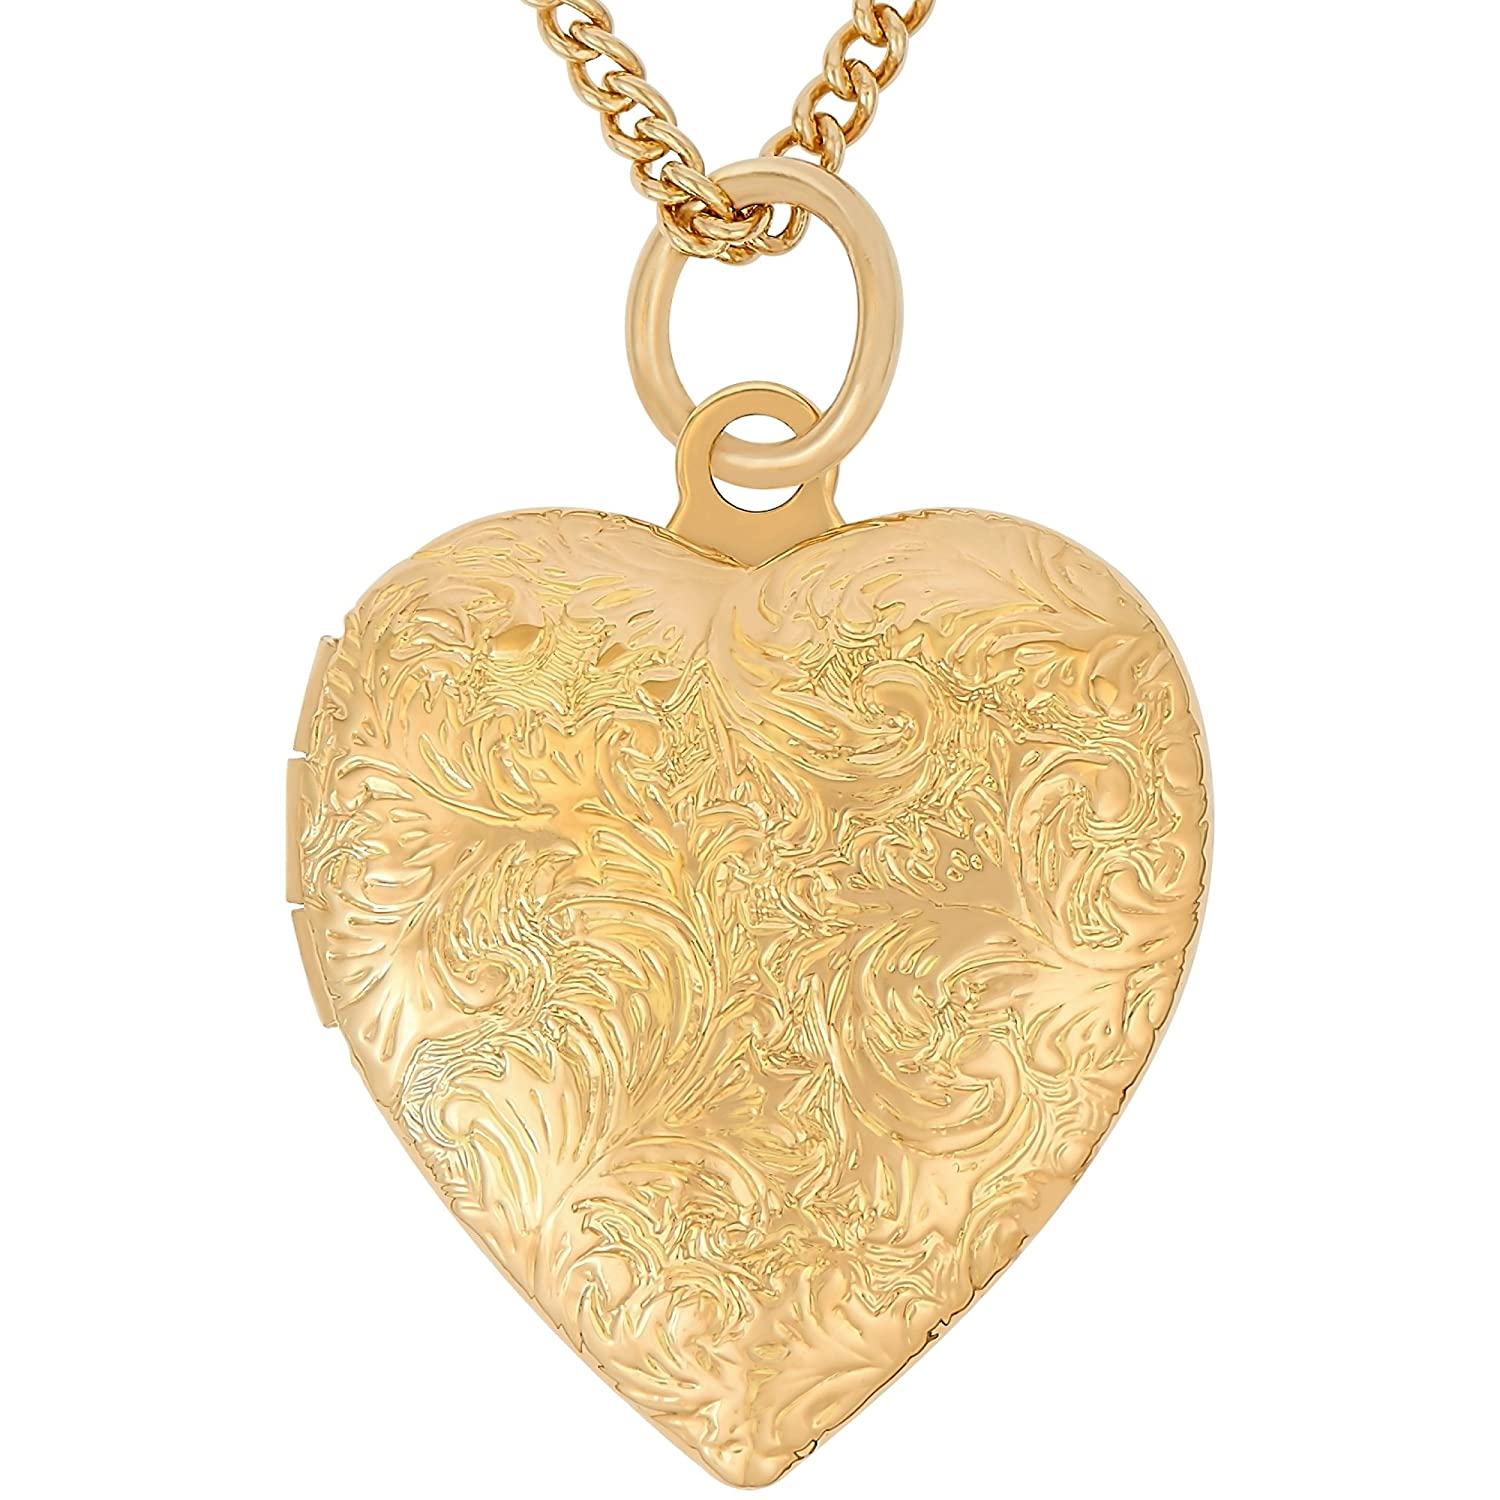 Lifetime Jewelry Heart Locket Necklace for Women and Girls [ Antique ] - Up to 20X More 24k Yellow or White Gold Plating Than Other Photo Lockets - Choice of Pendant with or Without 18 Inch Chain for Photos or Pictures Lifetime Products Group LKT-12